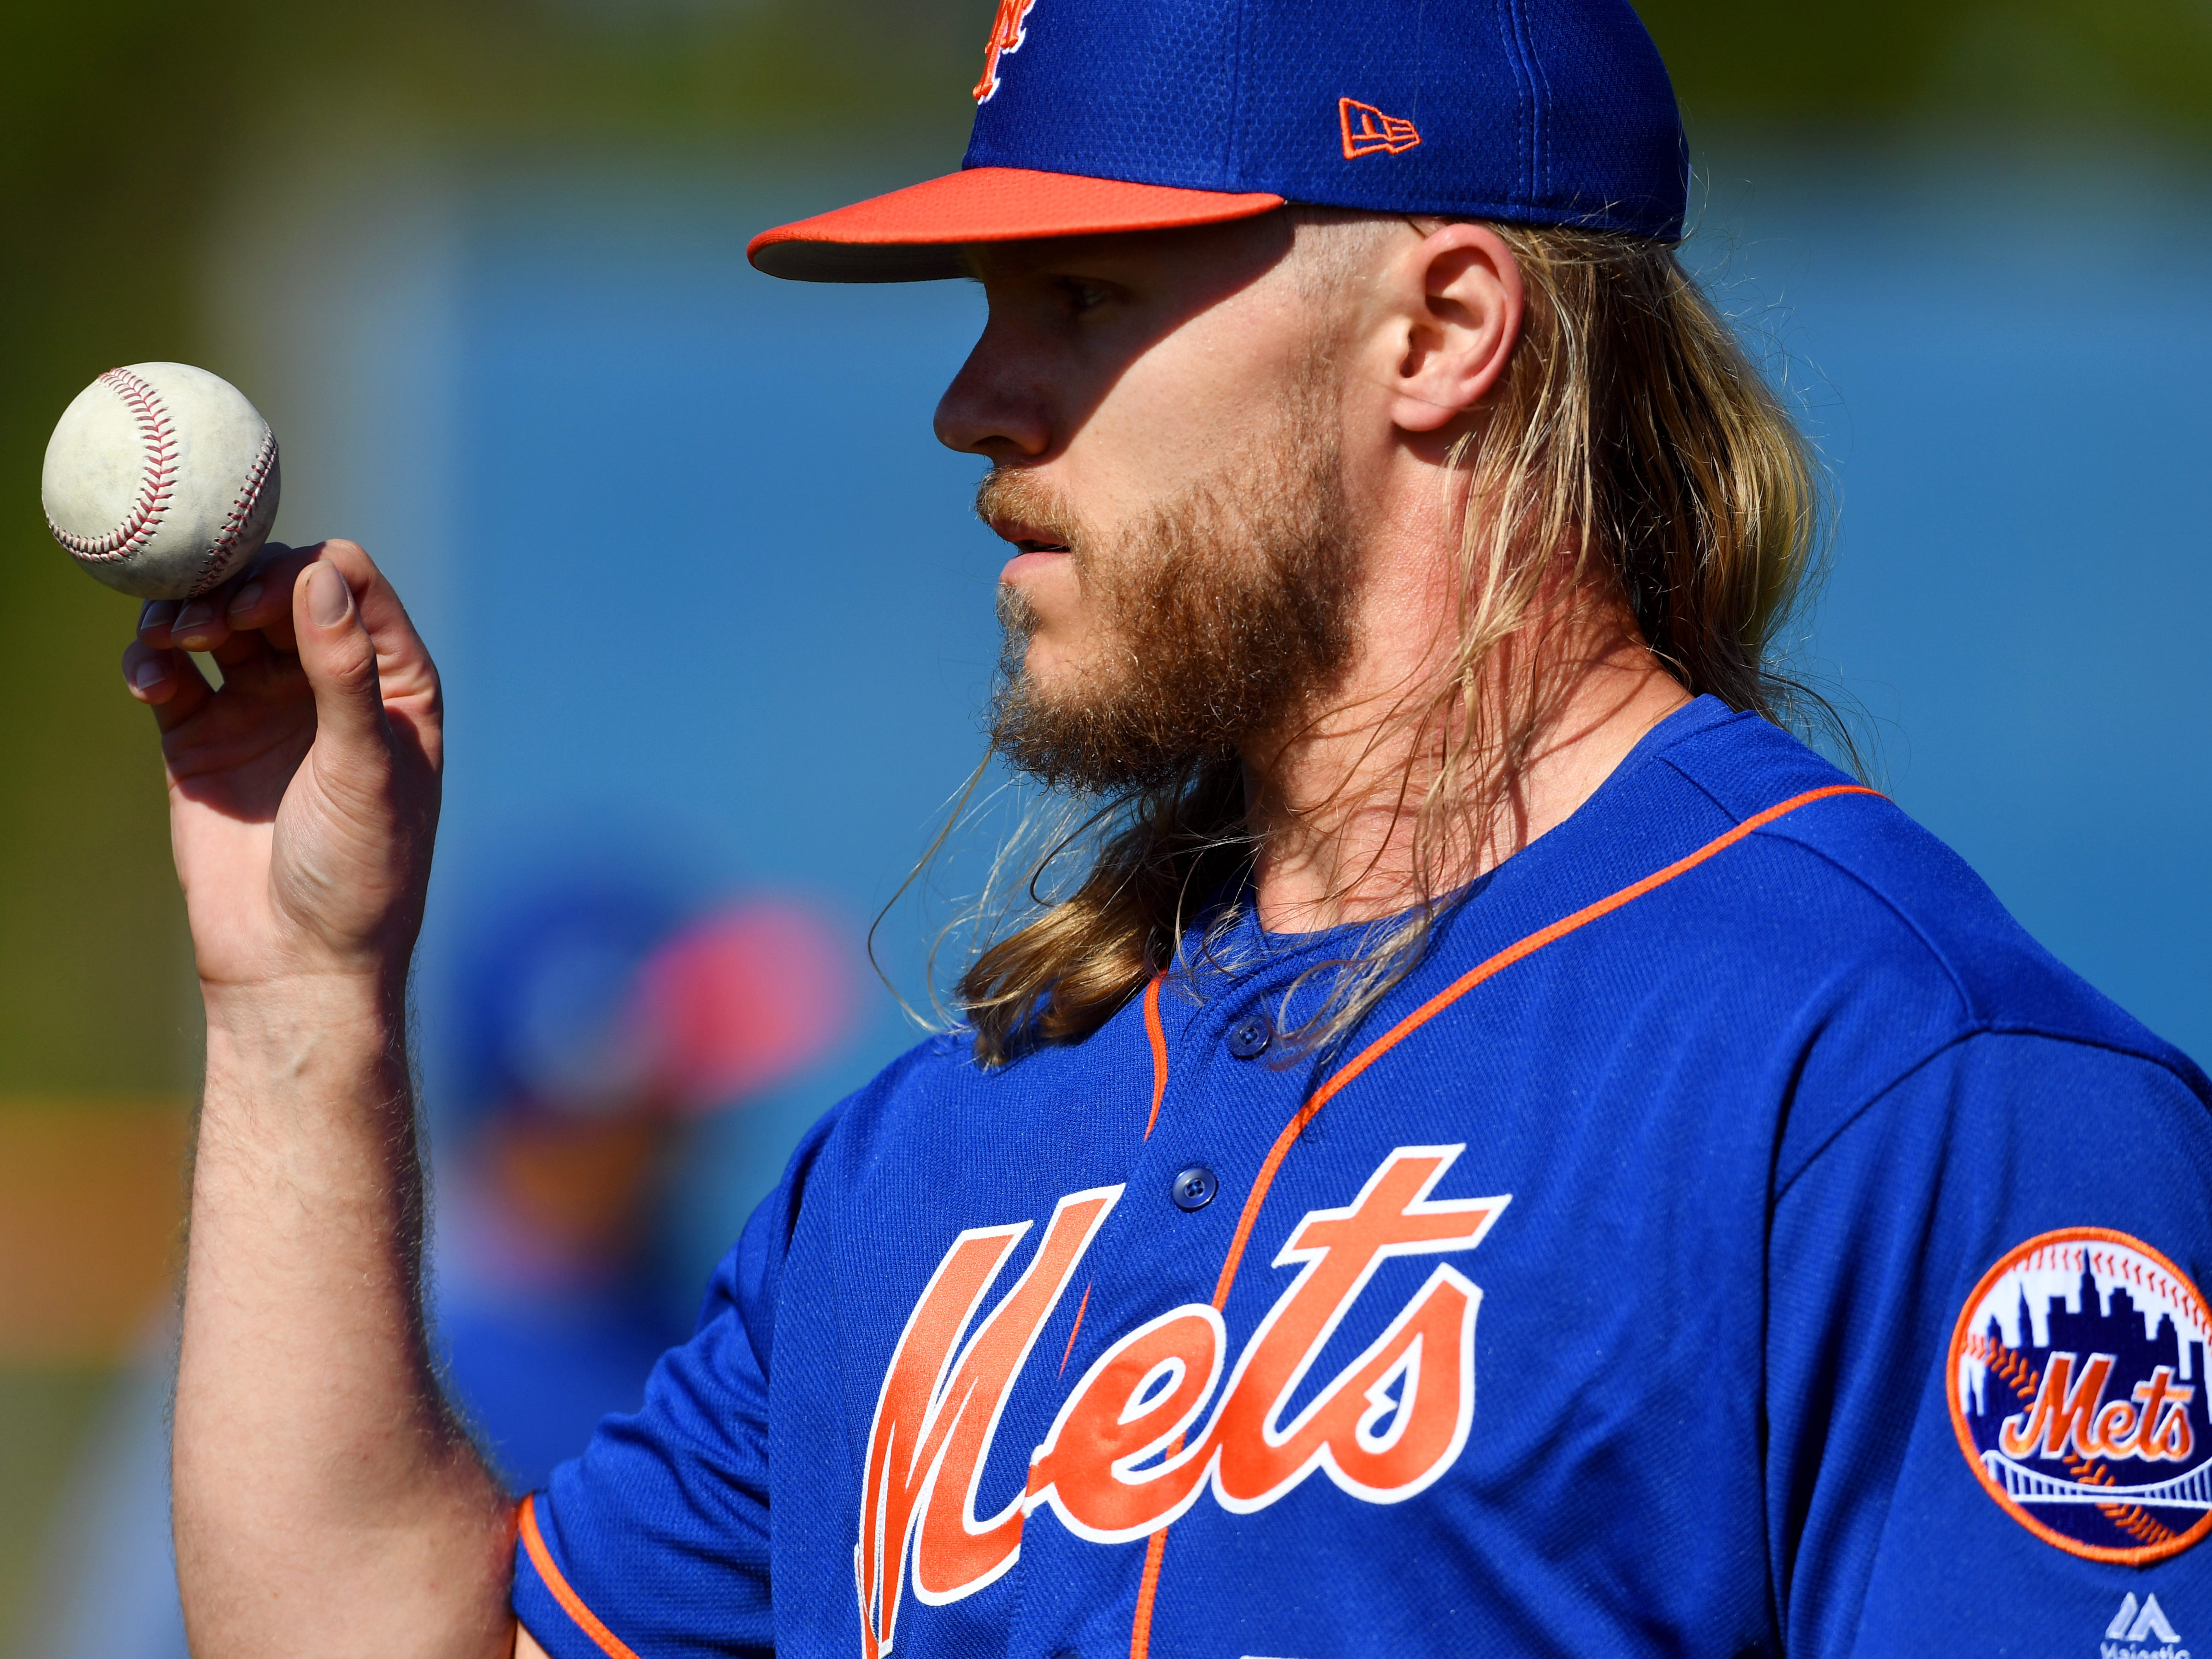 New York Mets right-handed pitcher Noah Syndergaard walks off the field on Thursday, Feb. 14, 2019 during morning workouts for pitchers and catchers at First Data Field in Port St. Lucie.